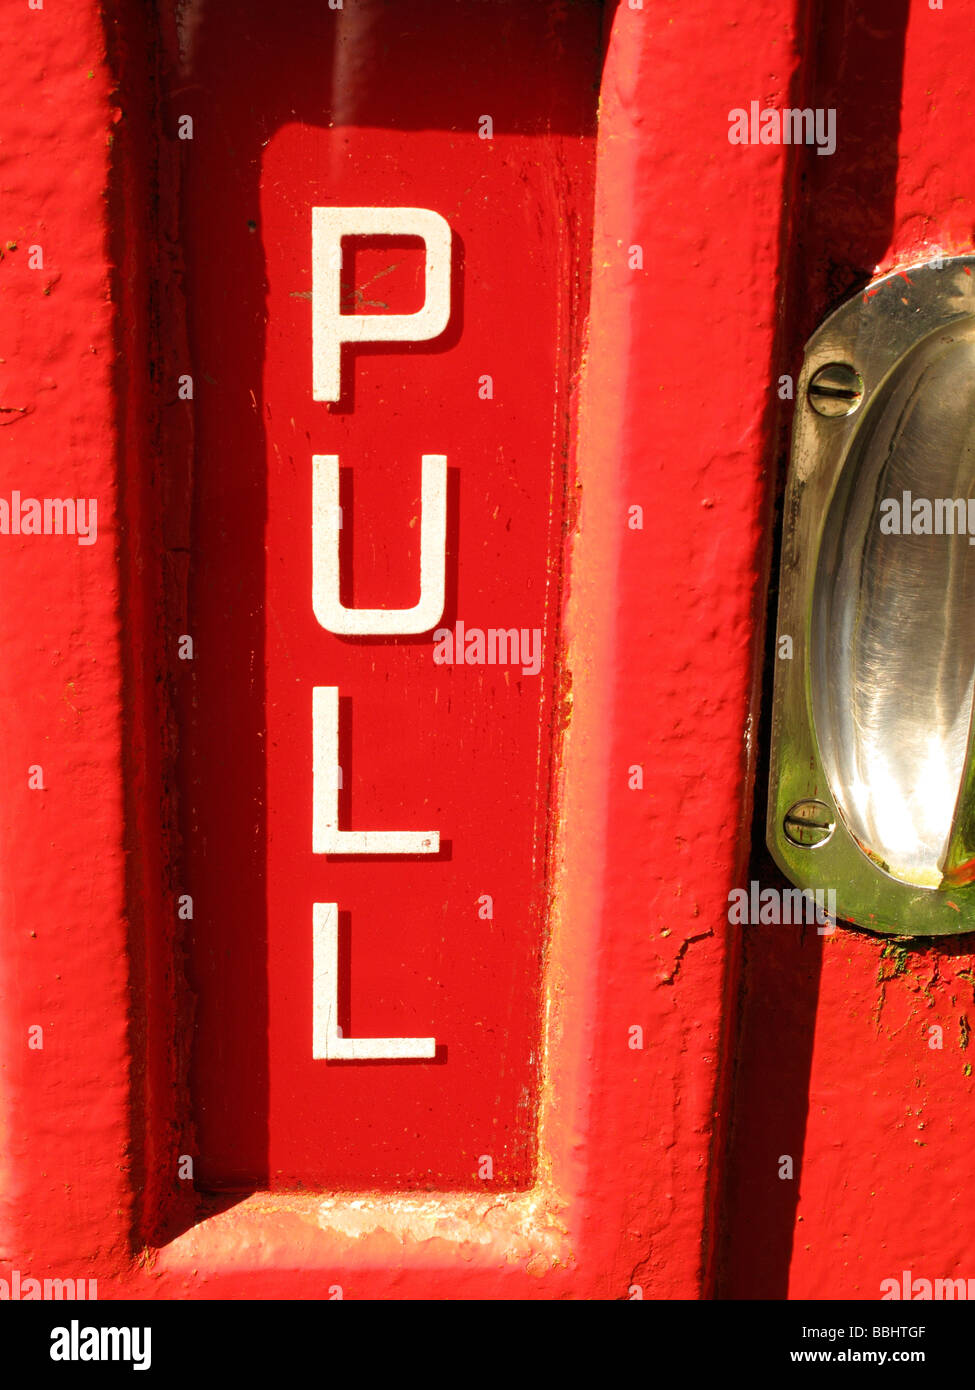 pull handle on telephone box - Stock Image